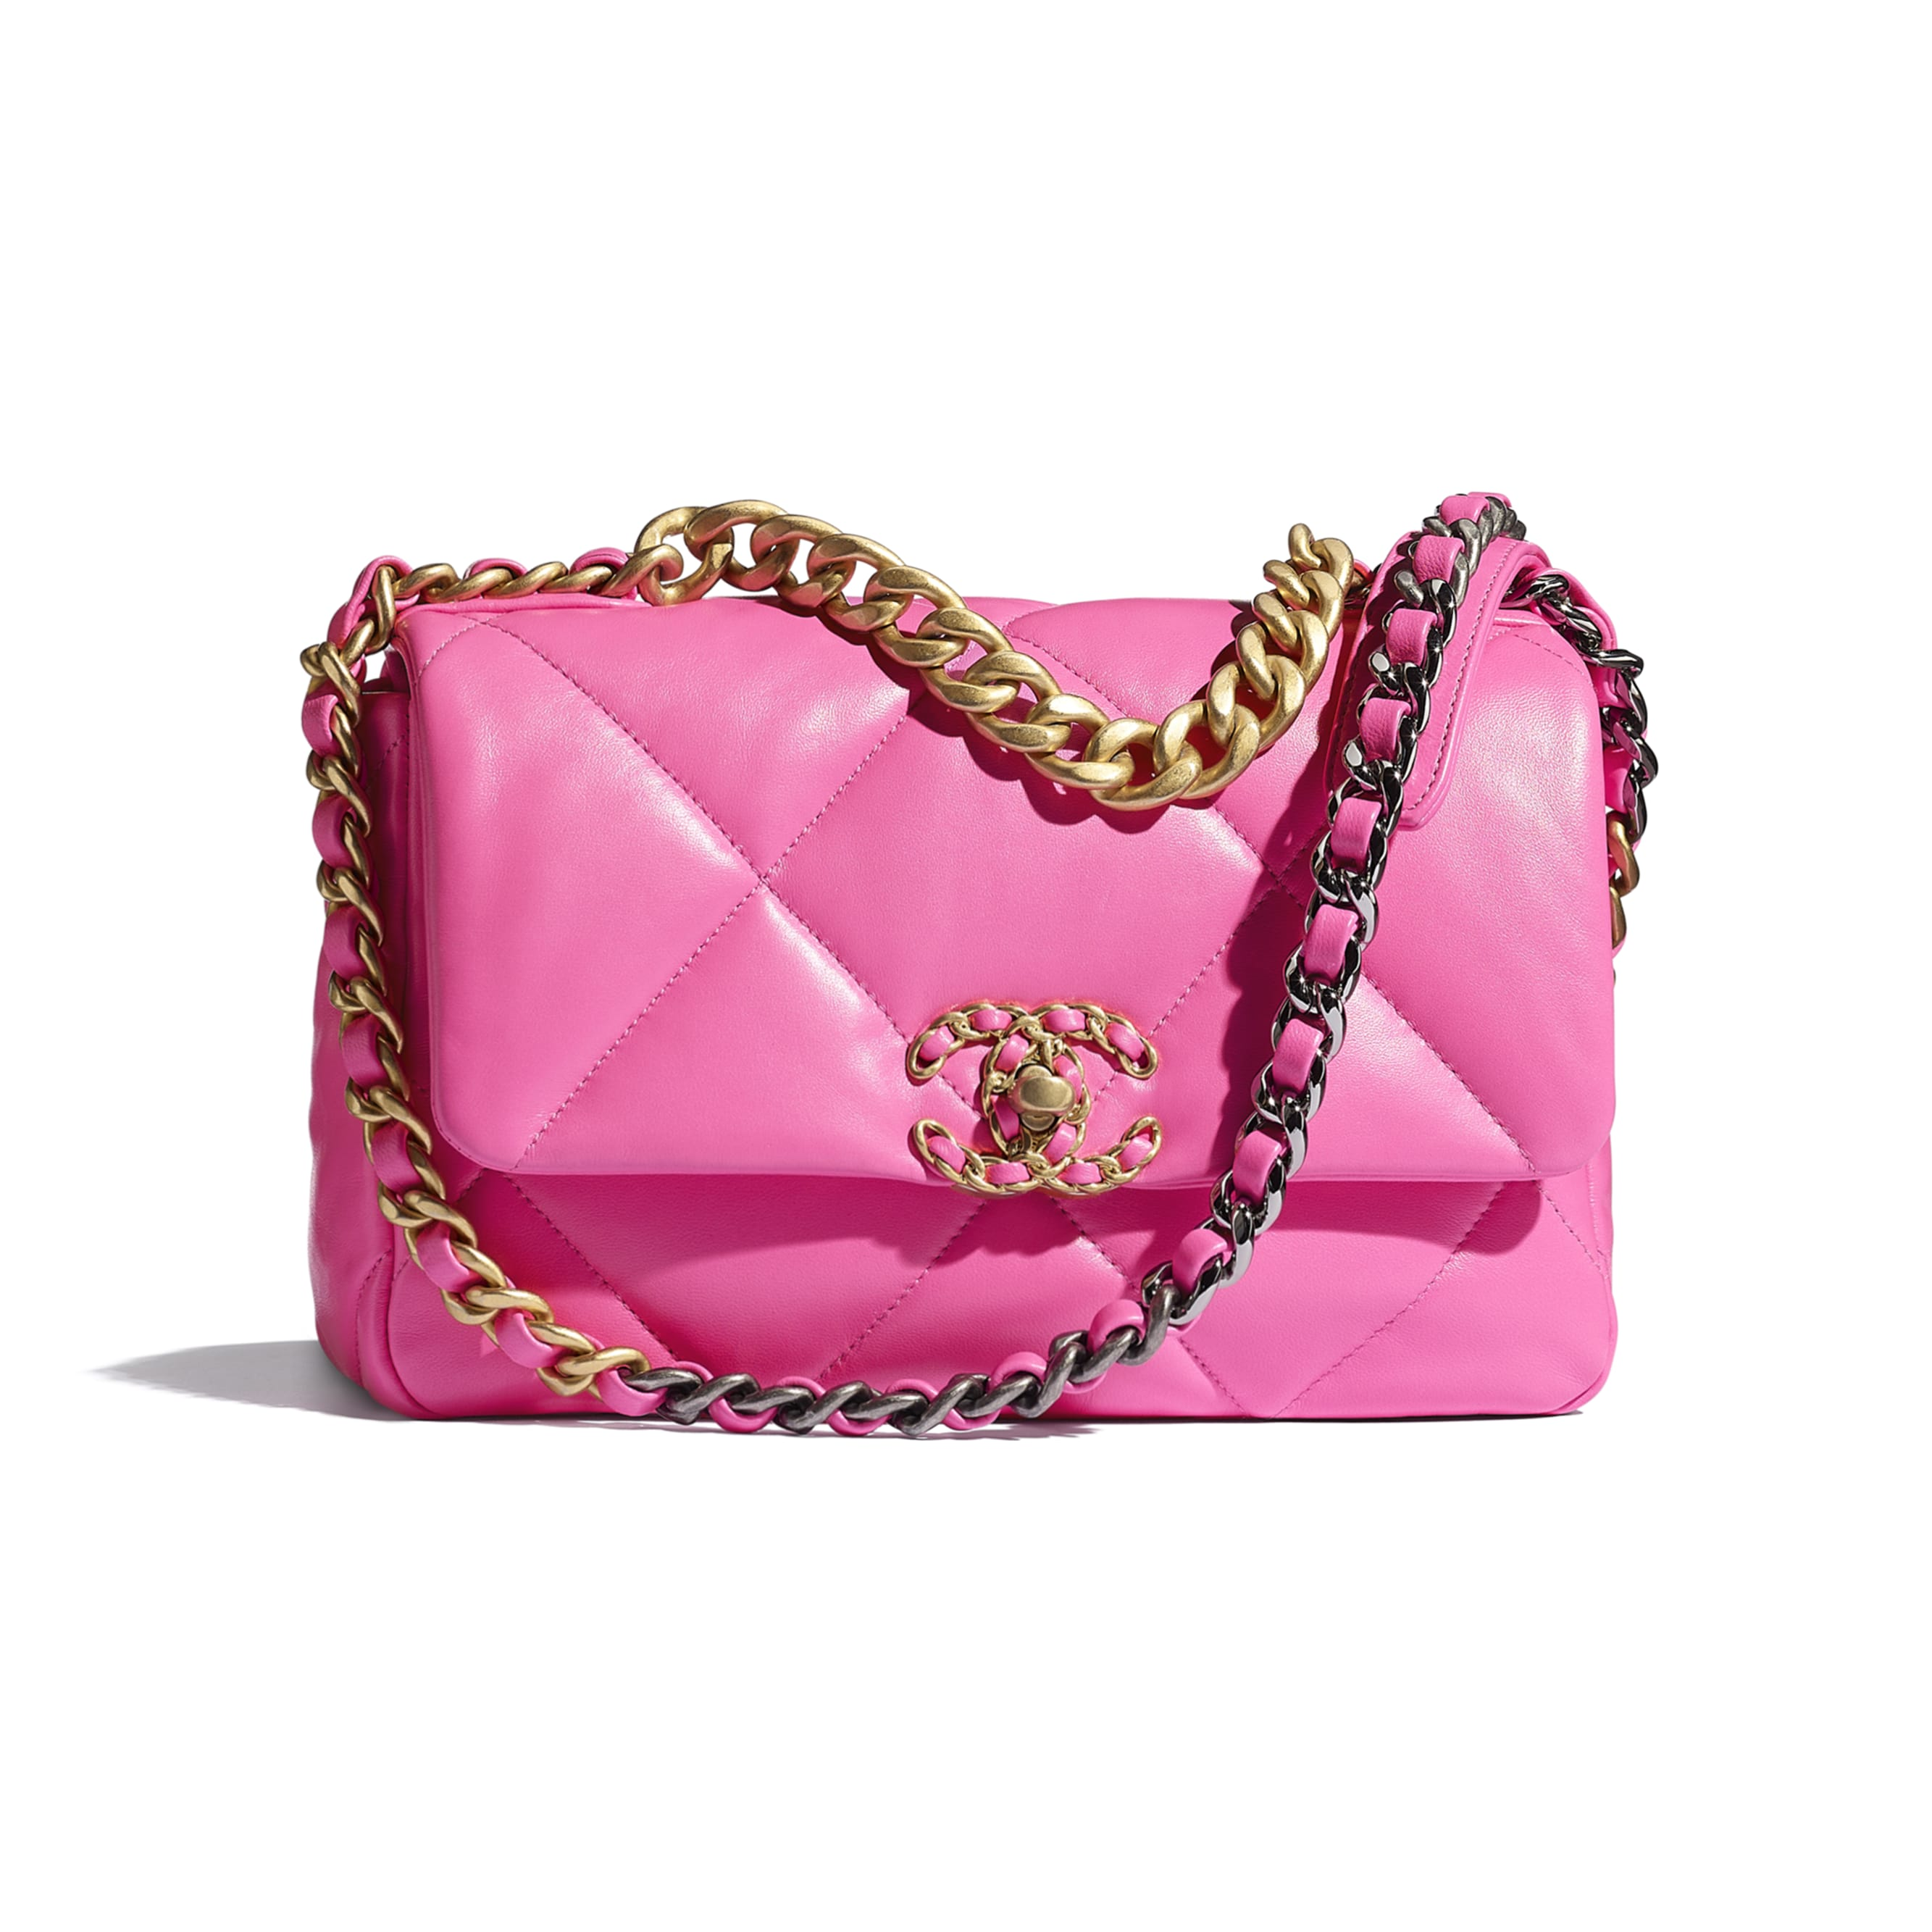 CHANEL 19 Flap Bag - Neon Pink - Shiny Lambskin, Gold-Tone, Silver-Tone & Ruthenium-Finish Metal - CHANEL - Default view - see standard sized version